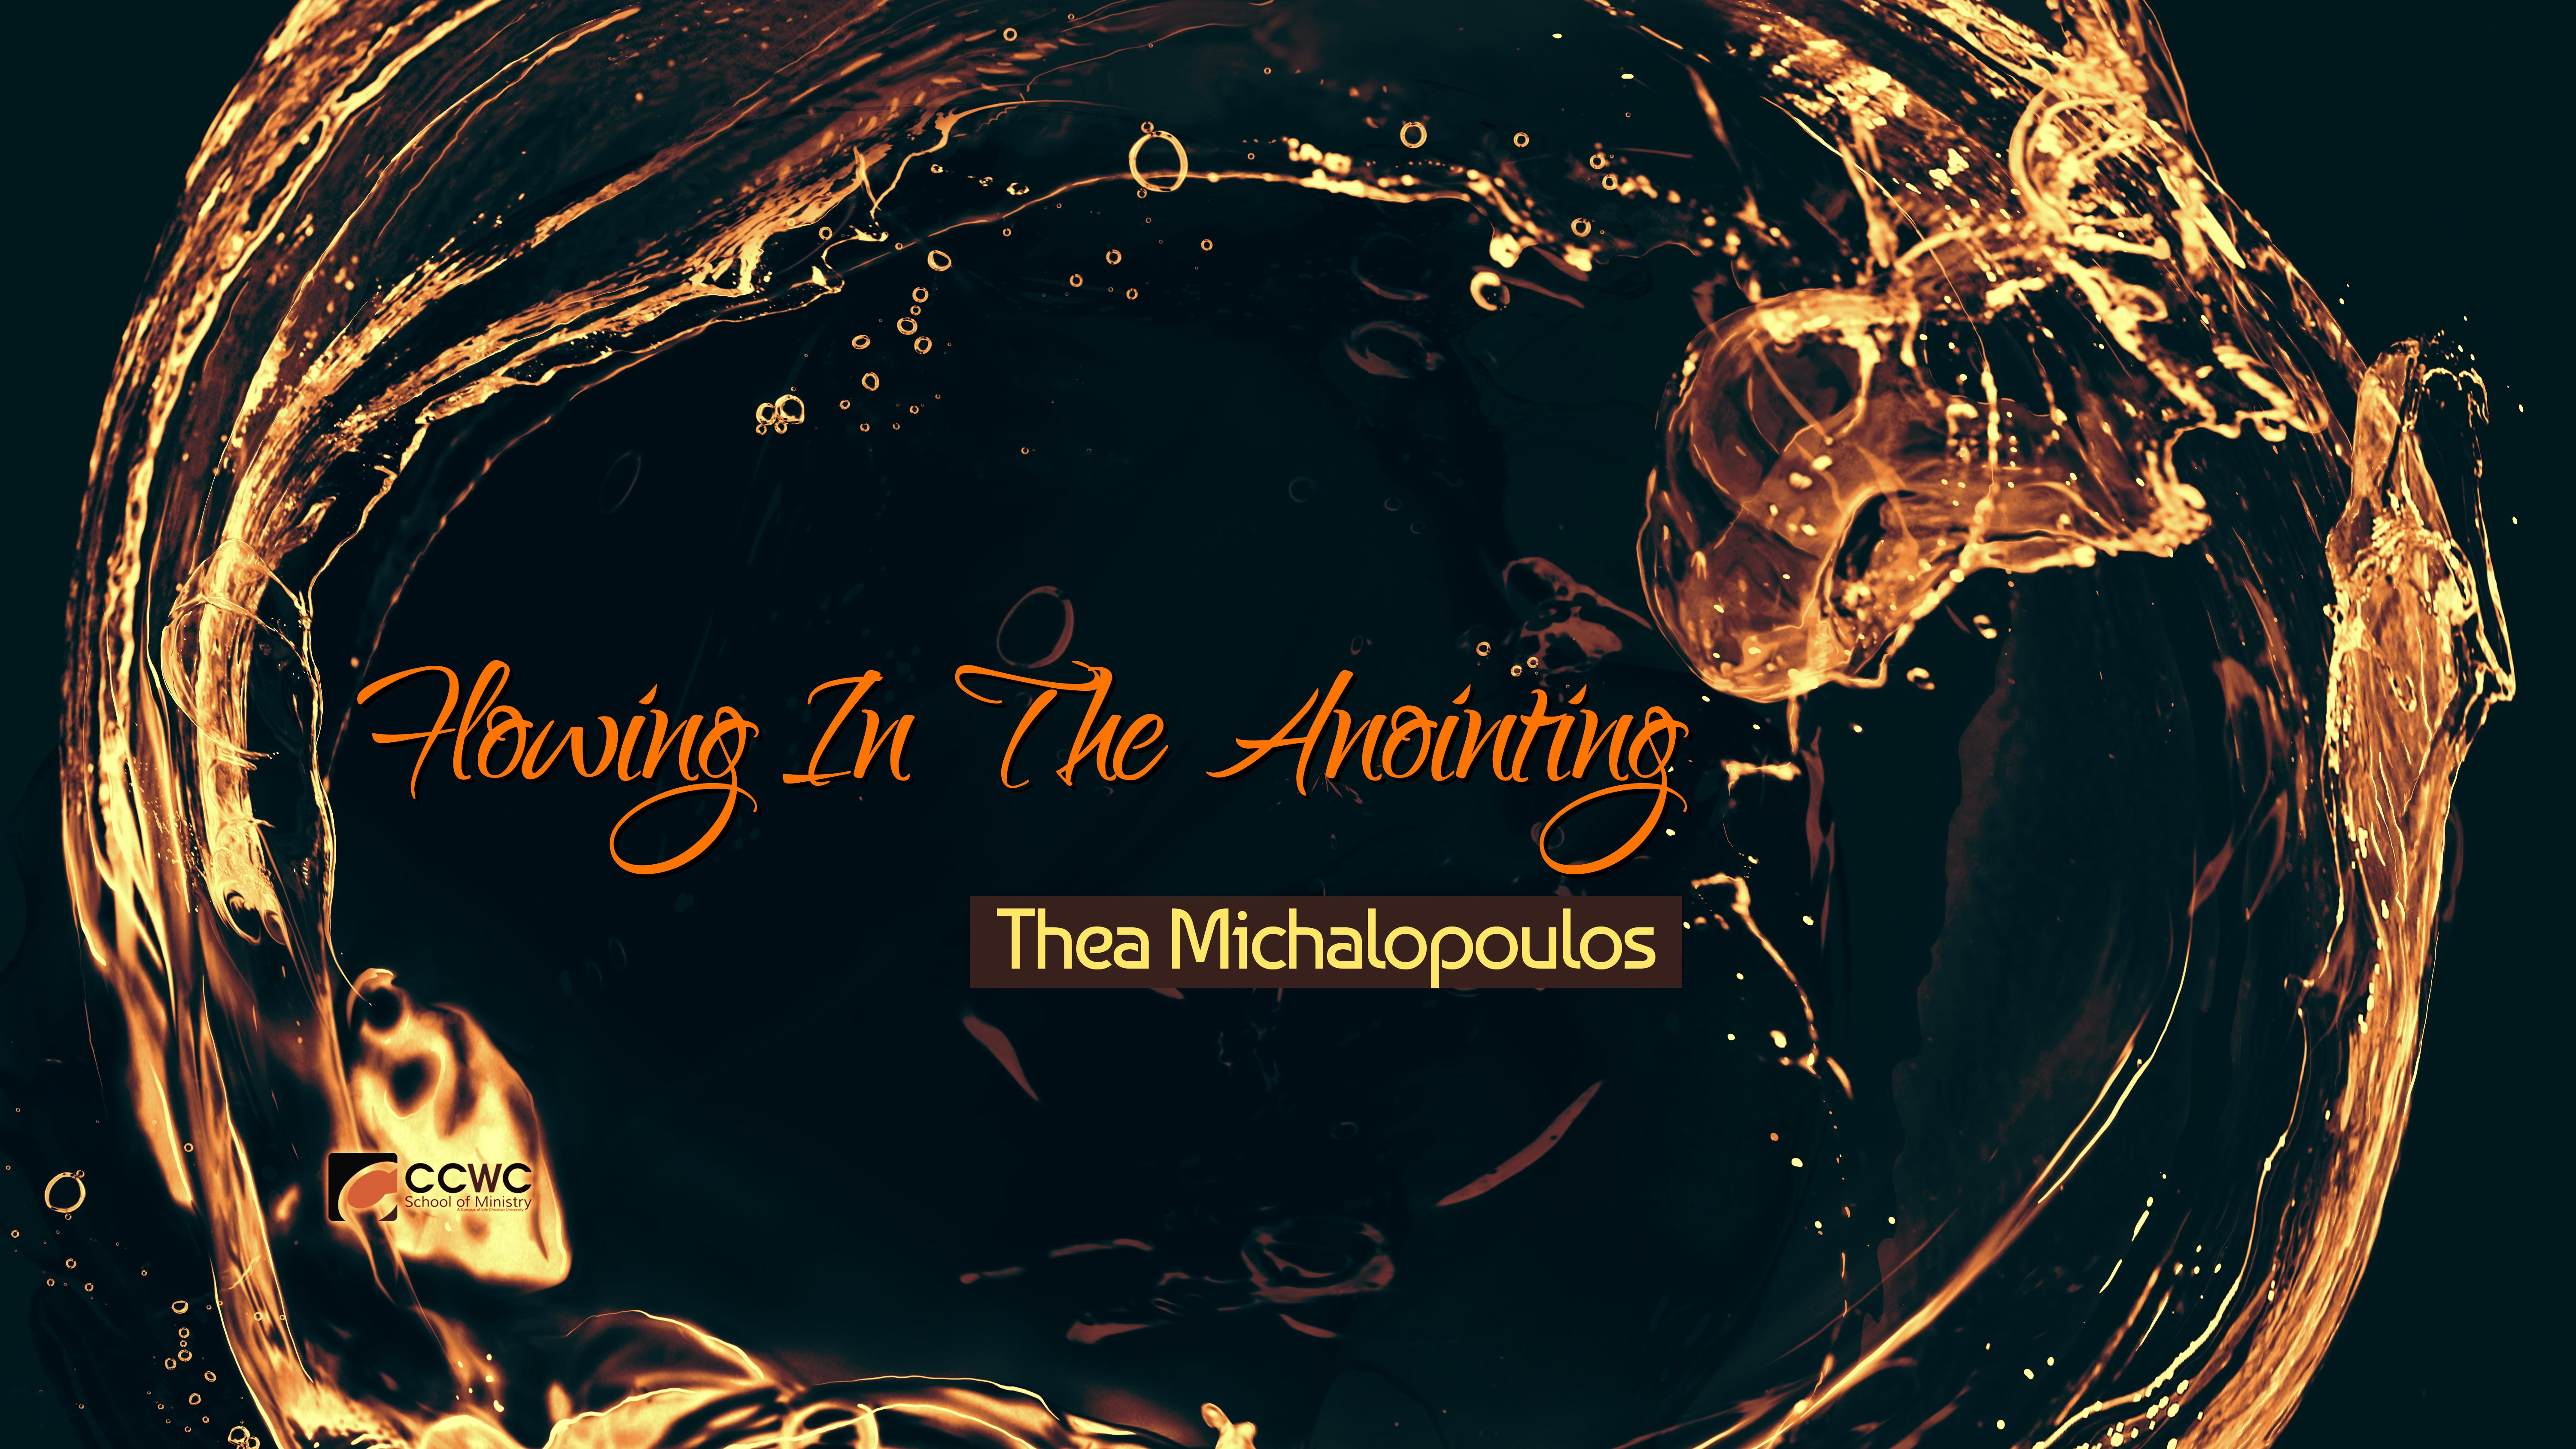 Flowing In The Anointing